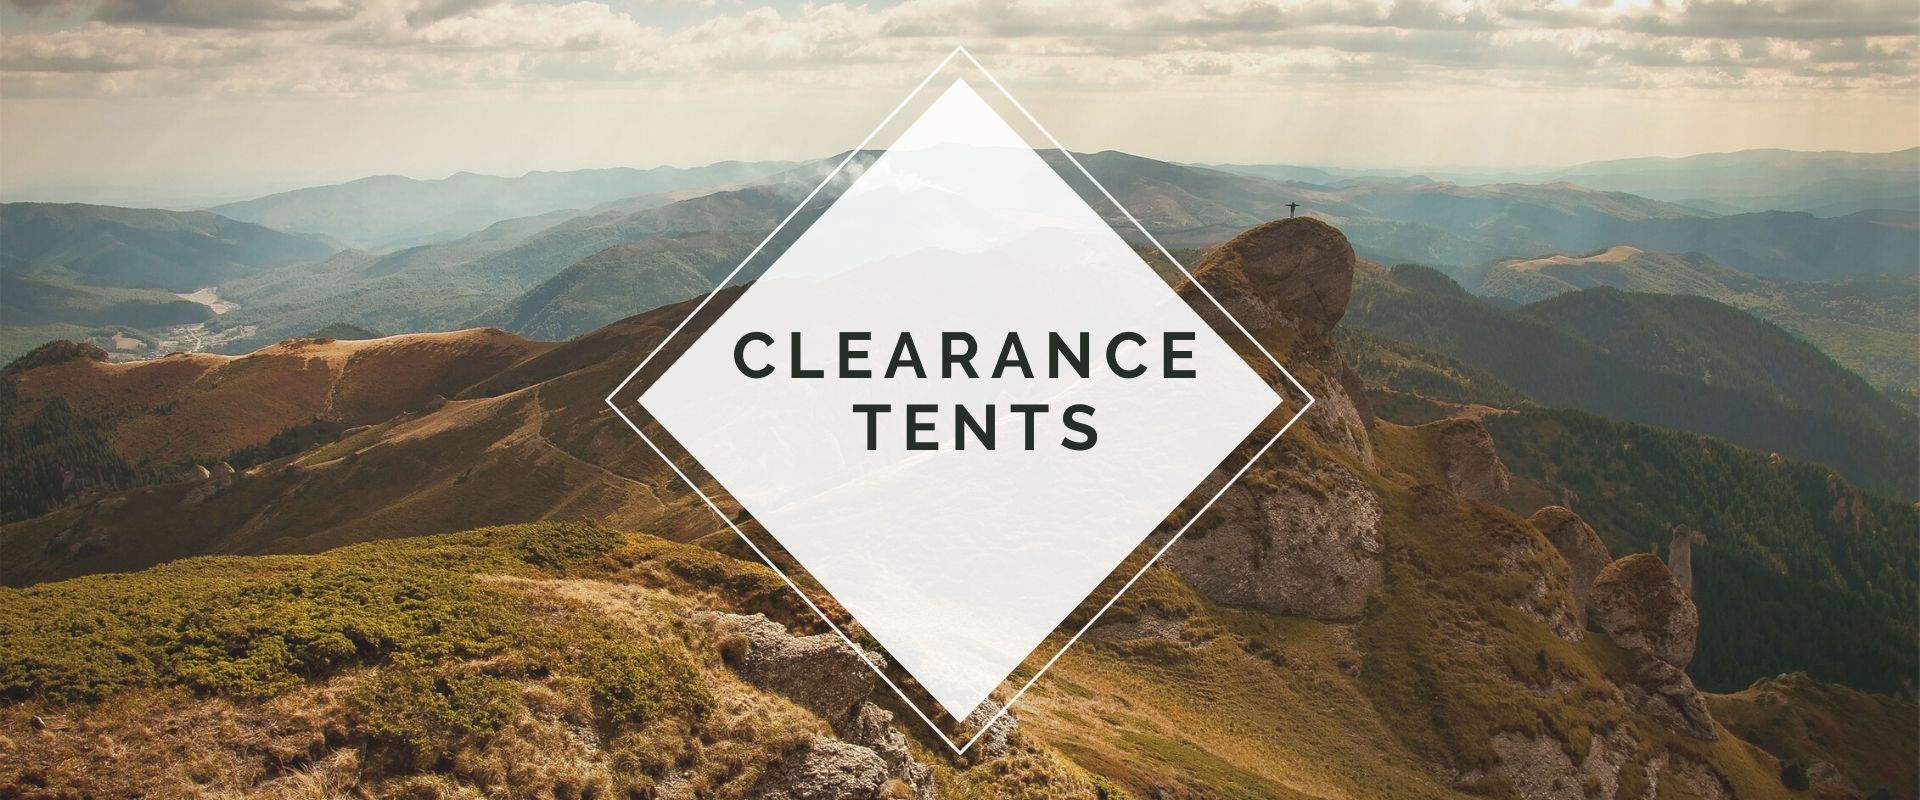 cLEARANCE TEnts